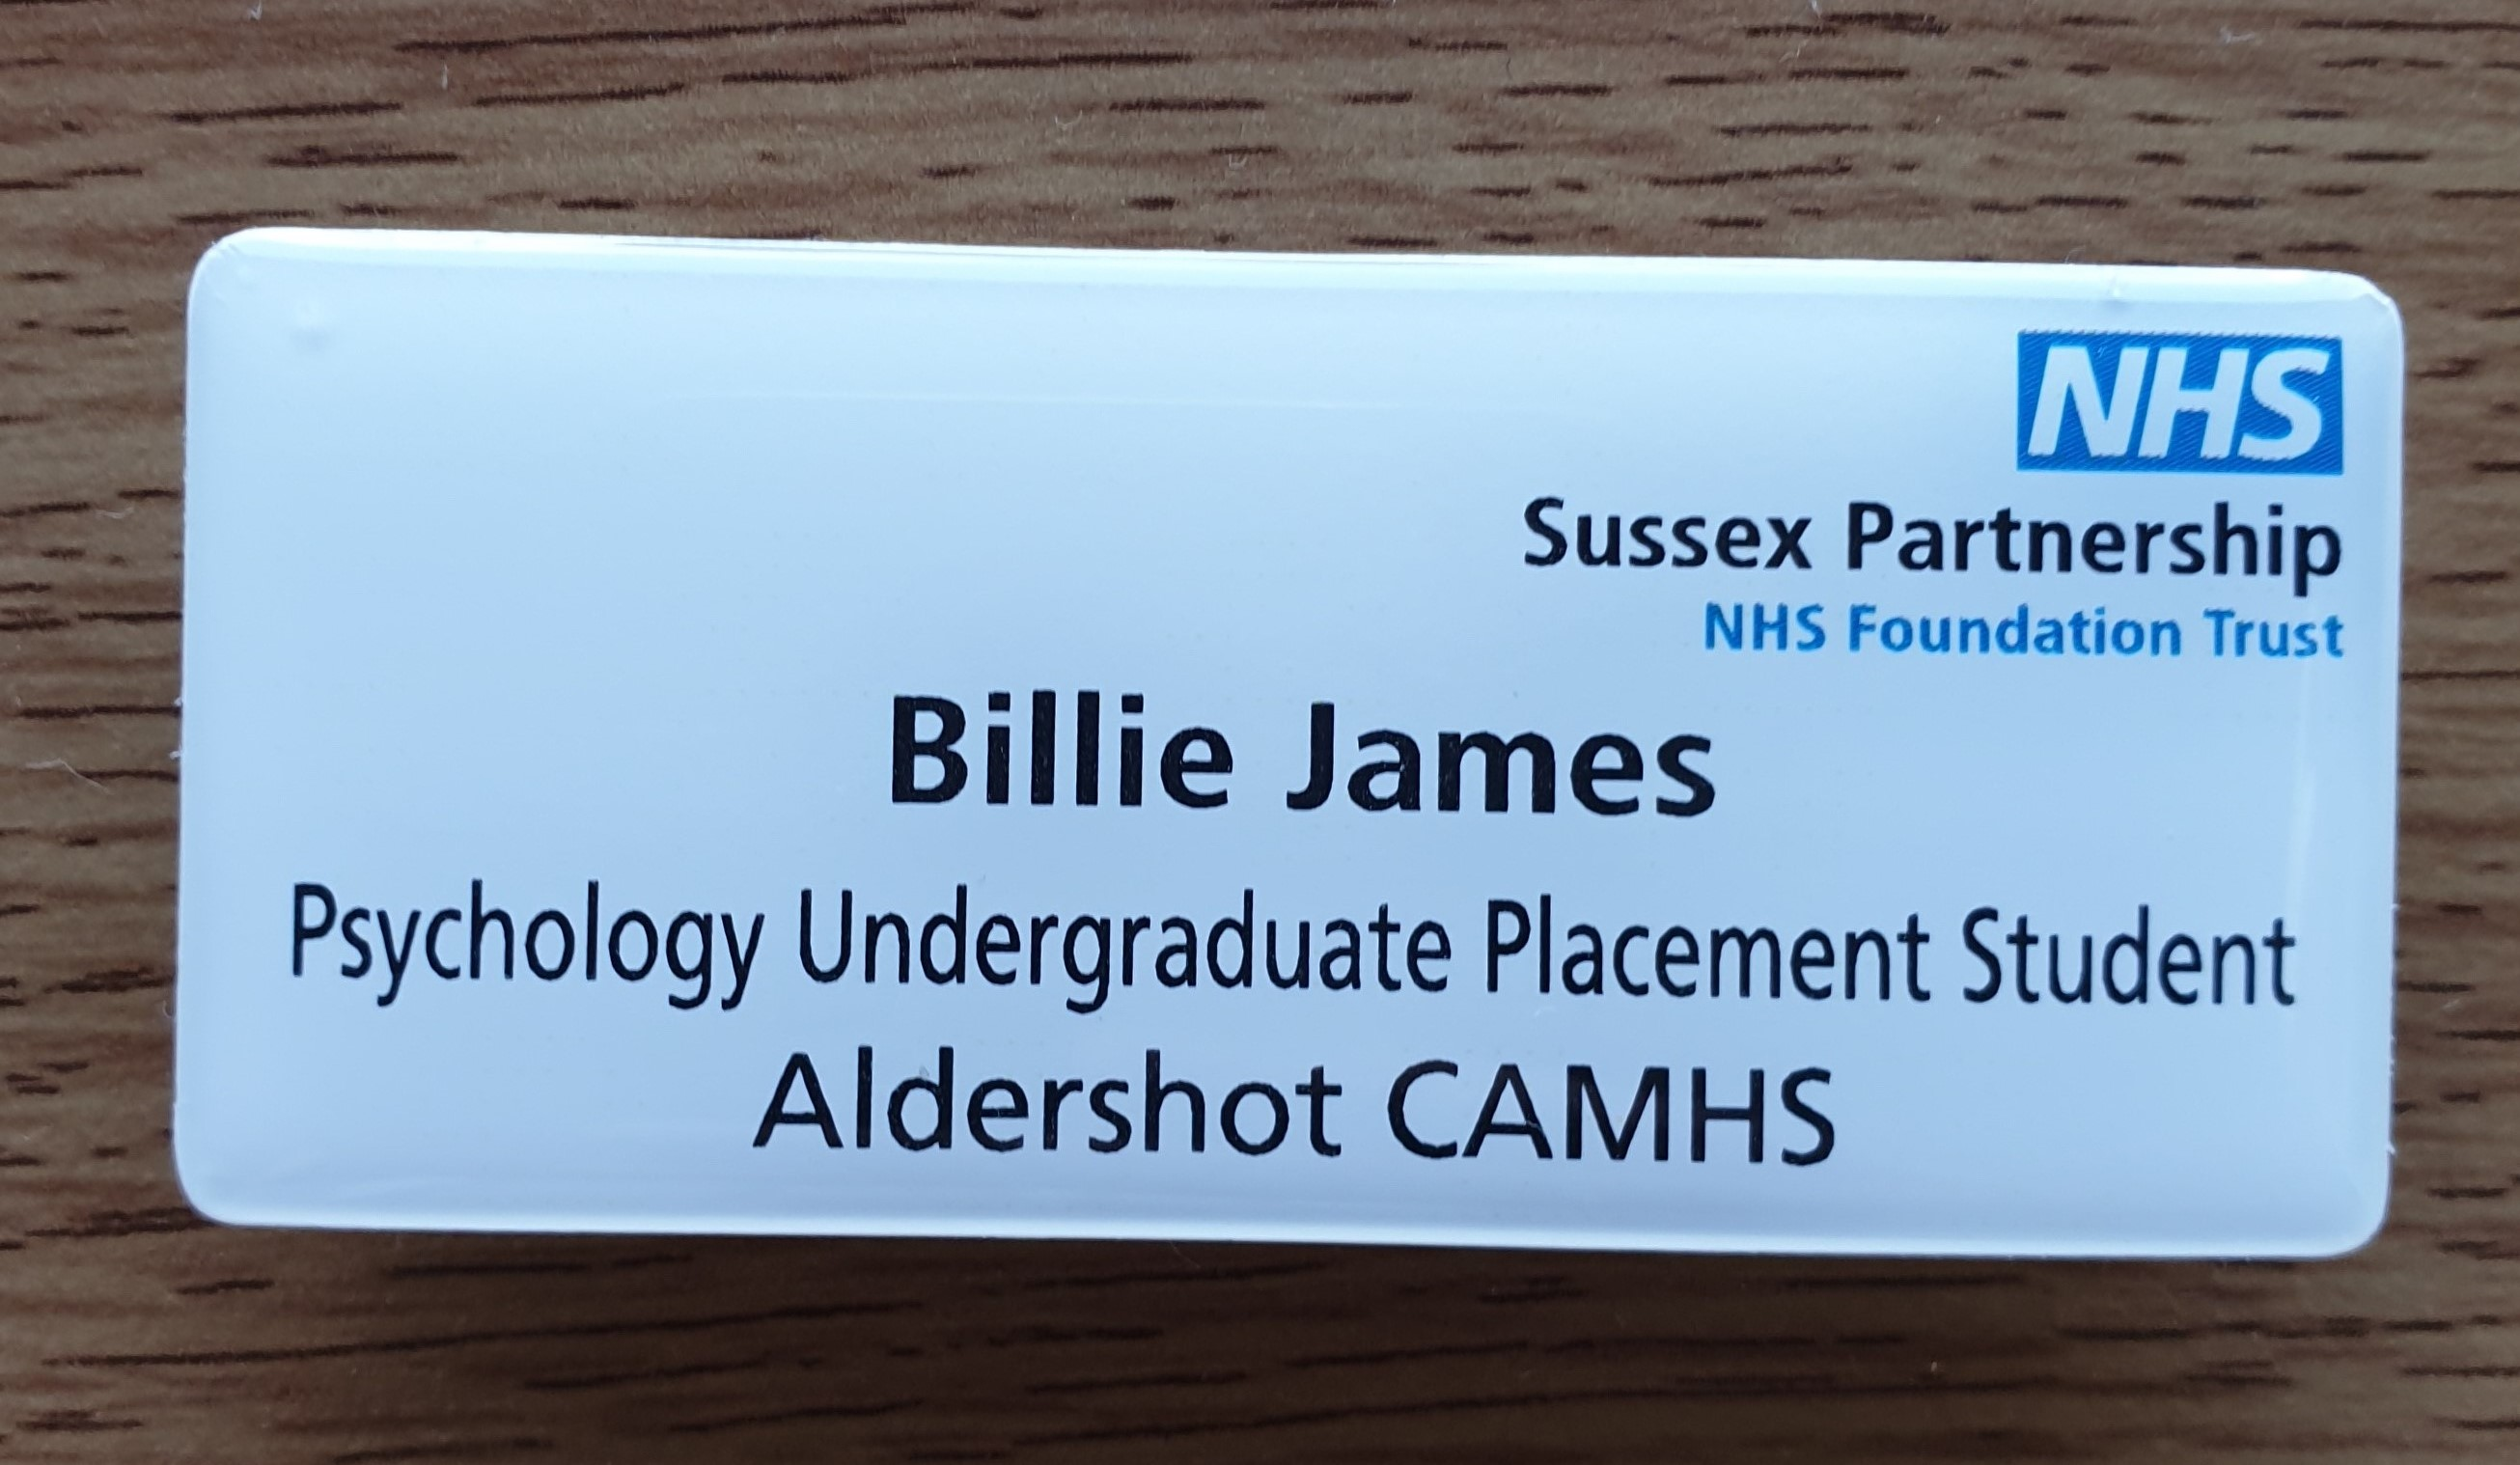 Photo of Billie's placement badge from her placement